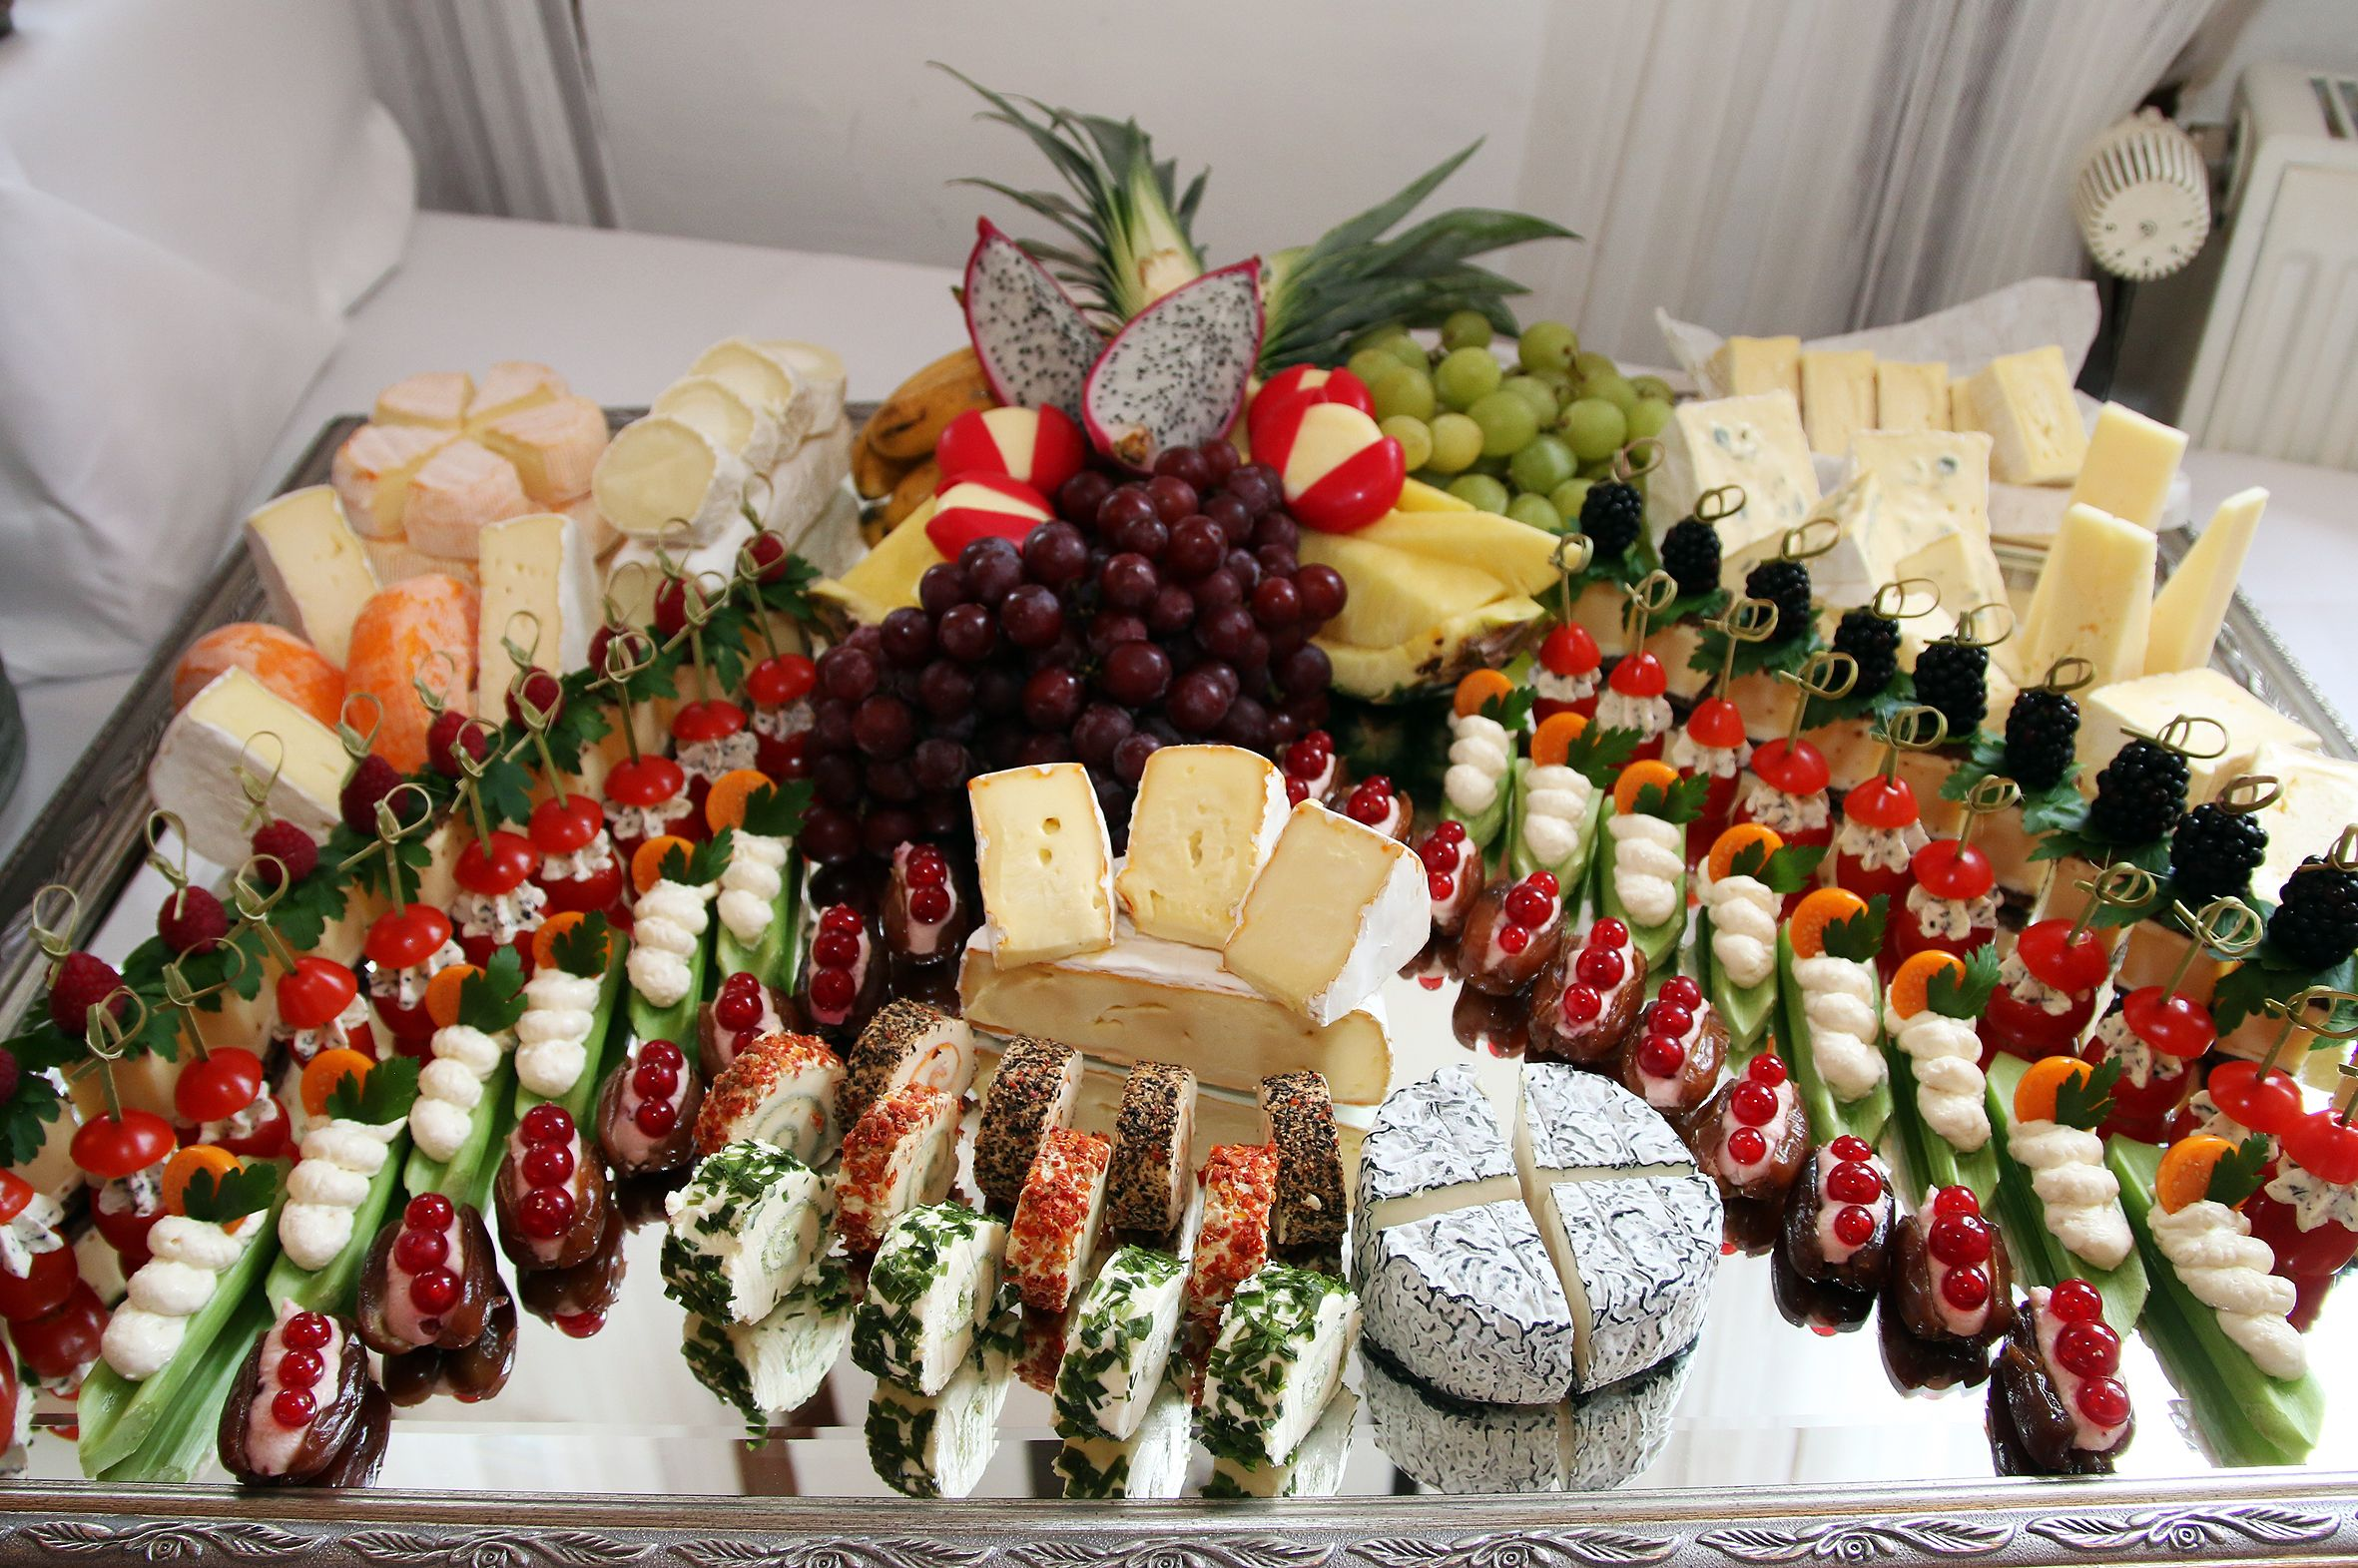 Kseplatte cheese  Weddingfood  Kseplatte Kalte